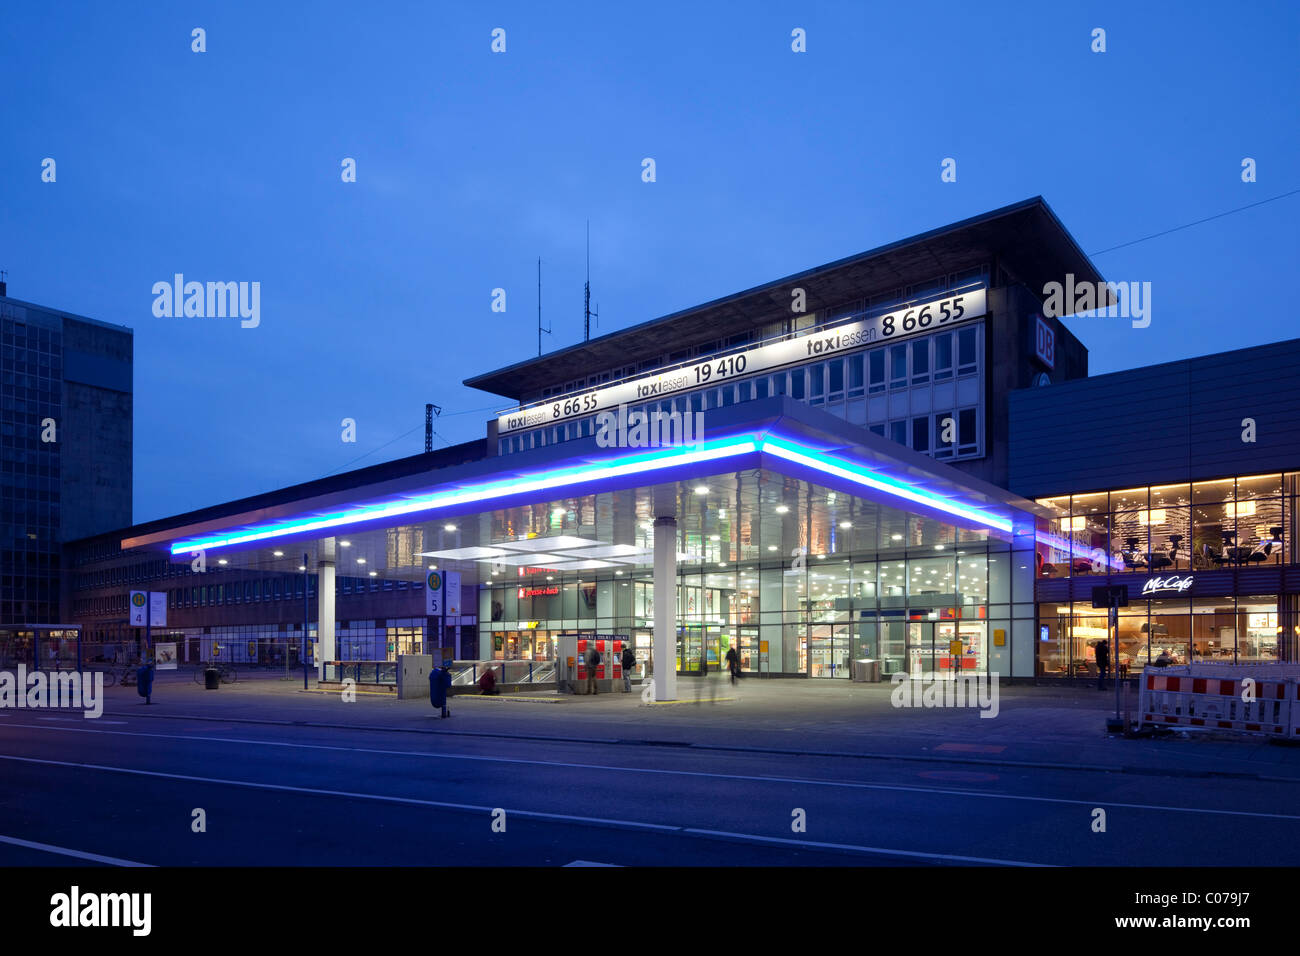 Central station, Essen, Ruhrgebiet region, North Rhine-Westphalia, Germany, Europe Stock Photo